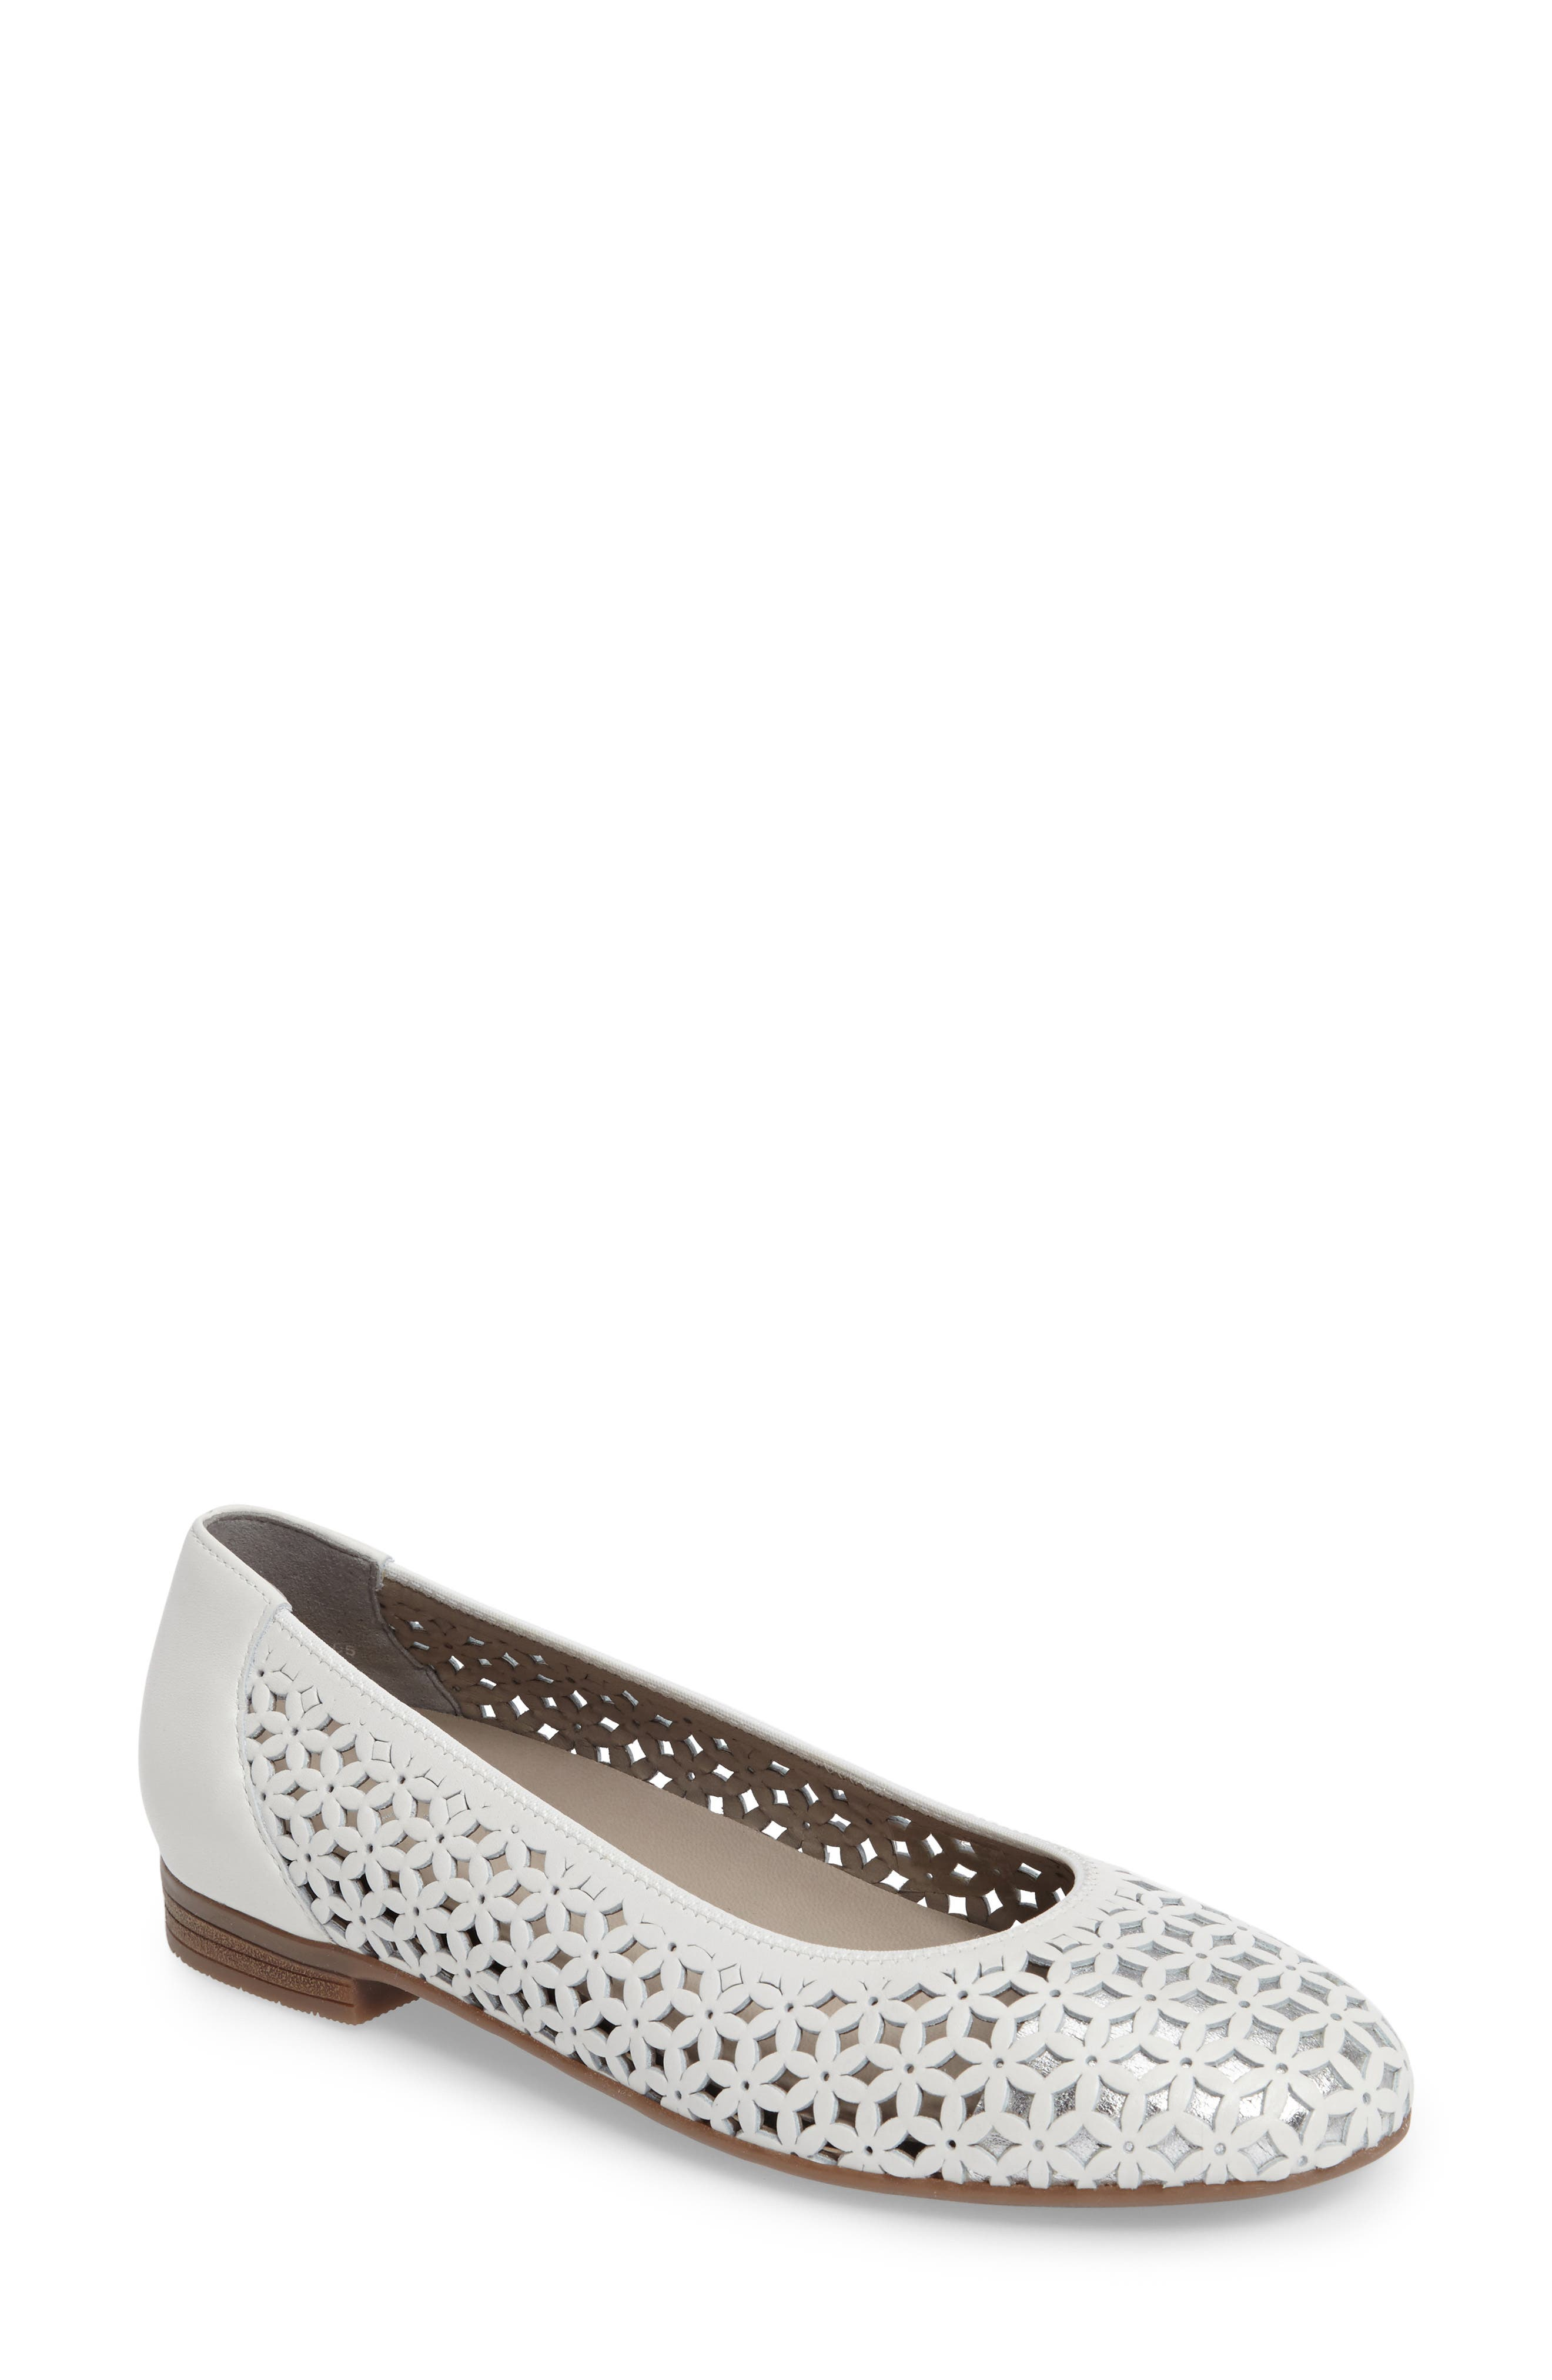 Stephanie Perforated Ballet Flat,                         Main,                         color, 101